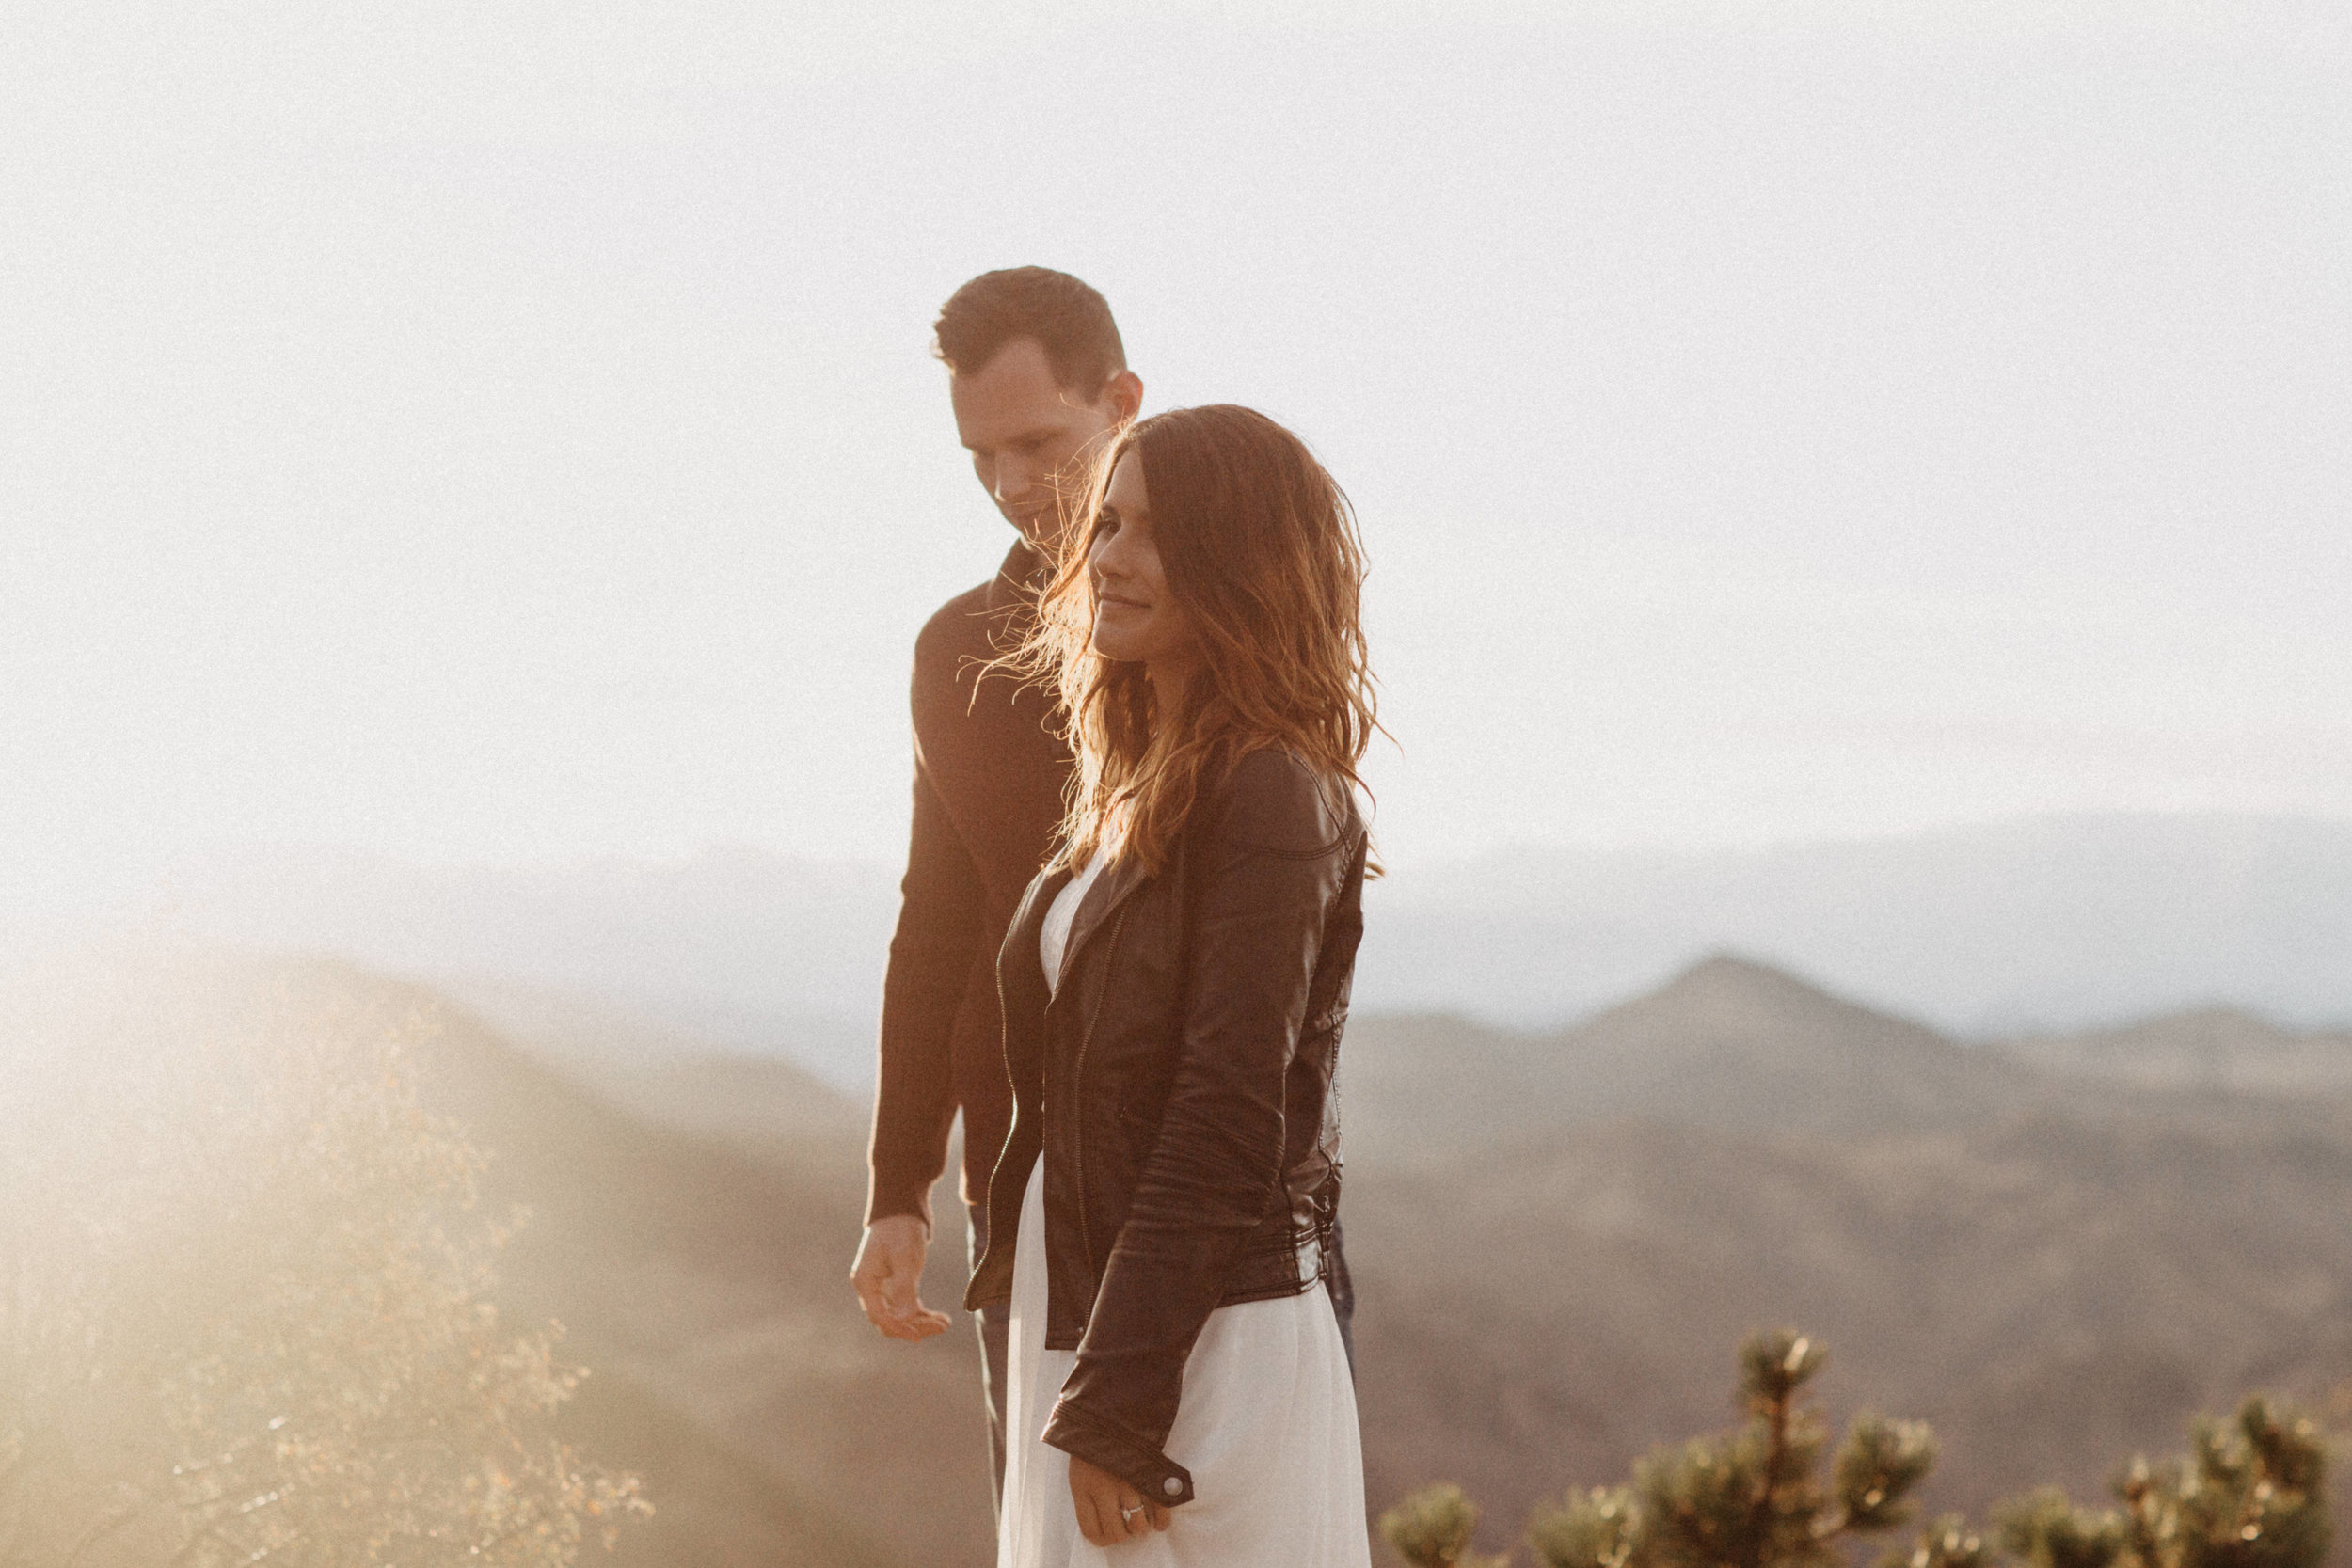 Lookout Mountain Engagement and Destination Wedding Photographers